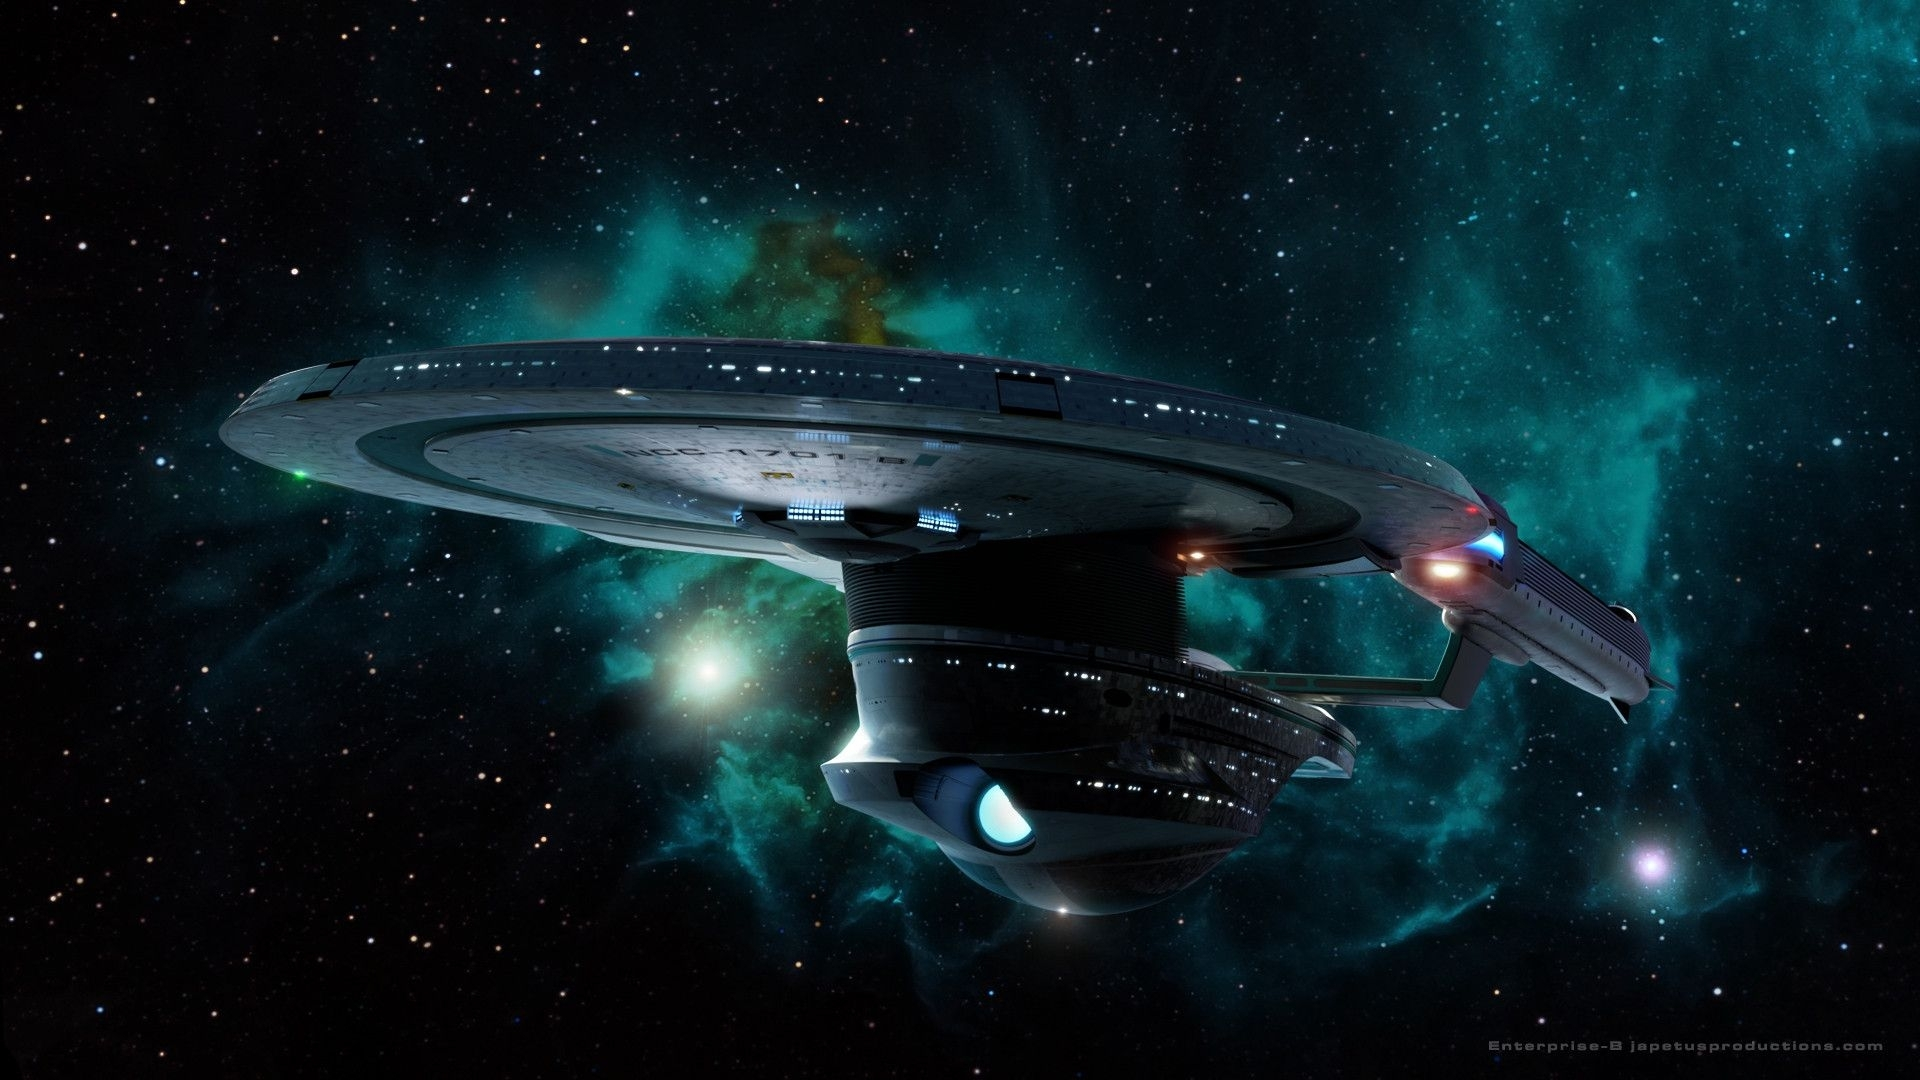 trek wallpapers 1920x1080 px – wallpapers and pictures for pc